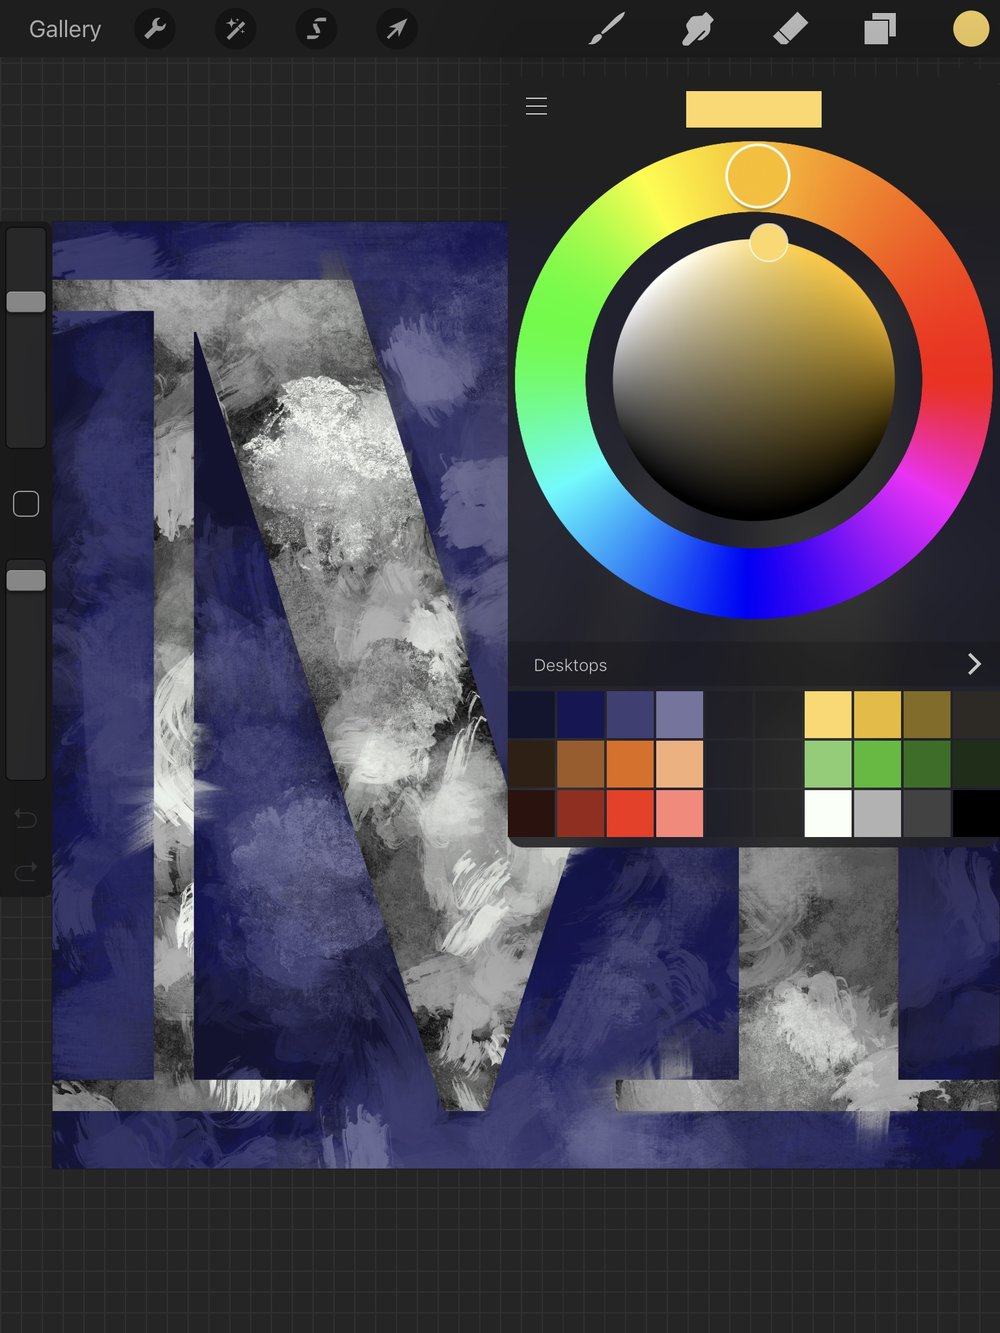 Painting the 'M' in ProCreate Each image uses the same color palette.